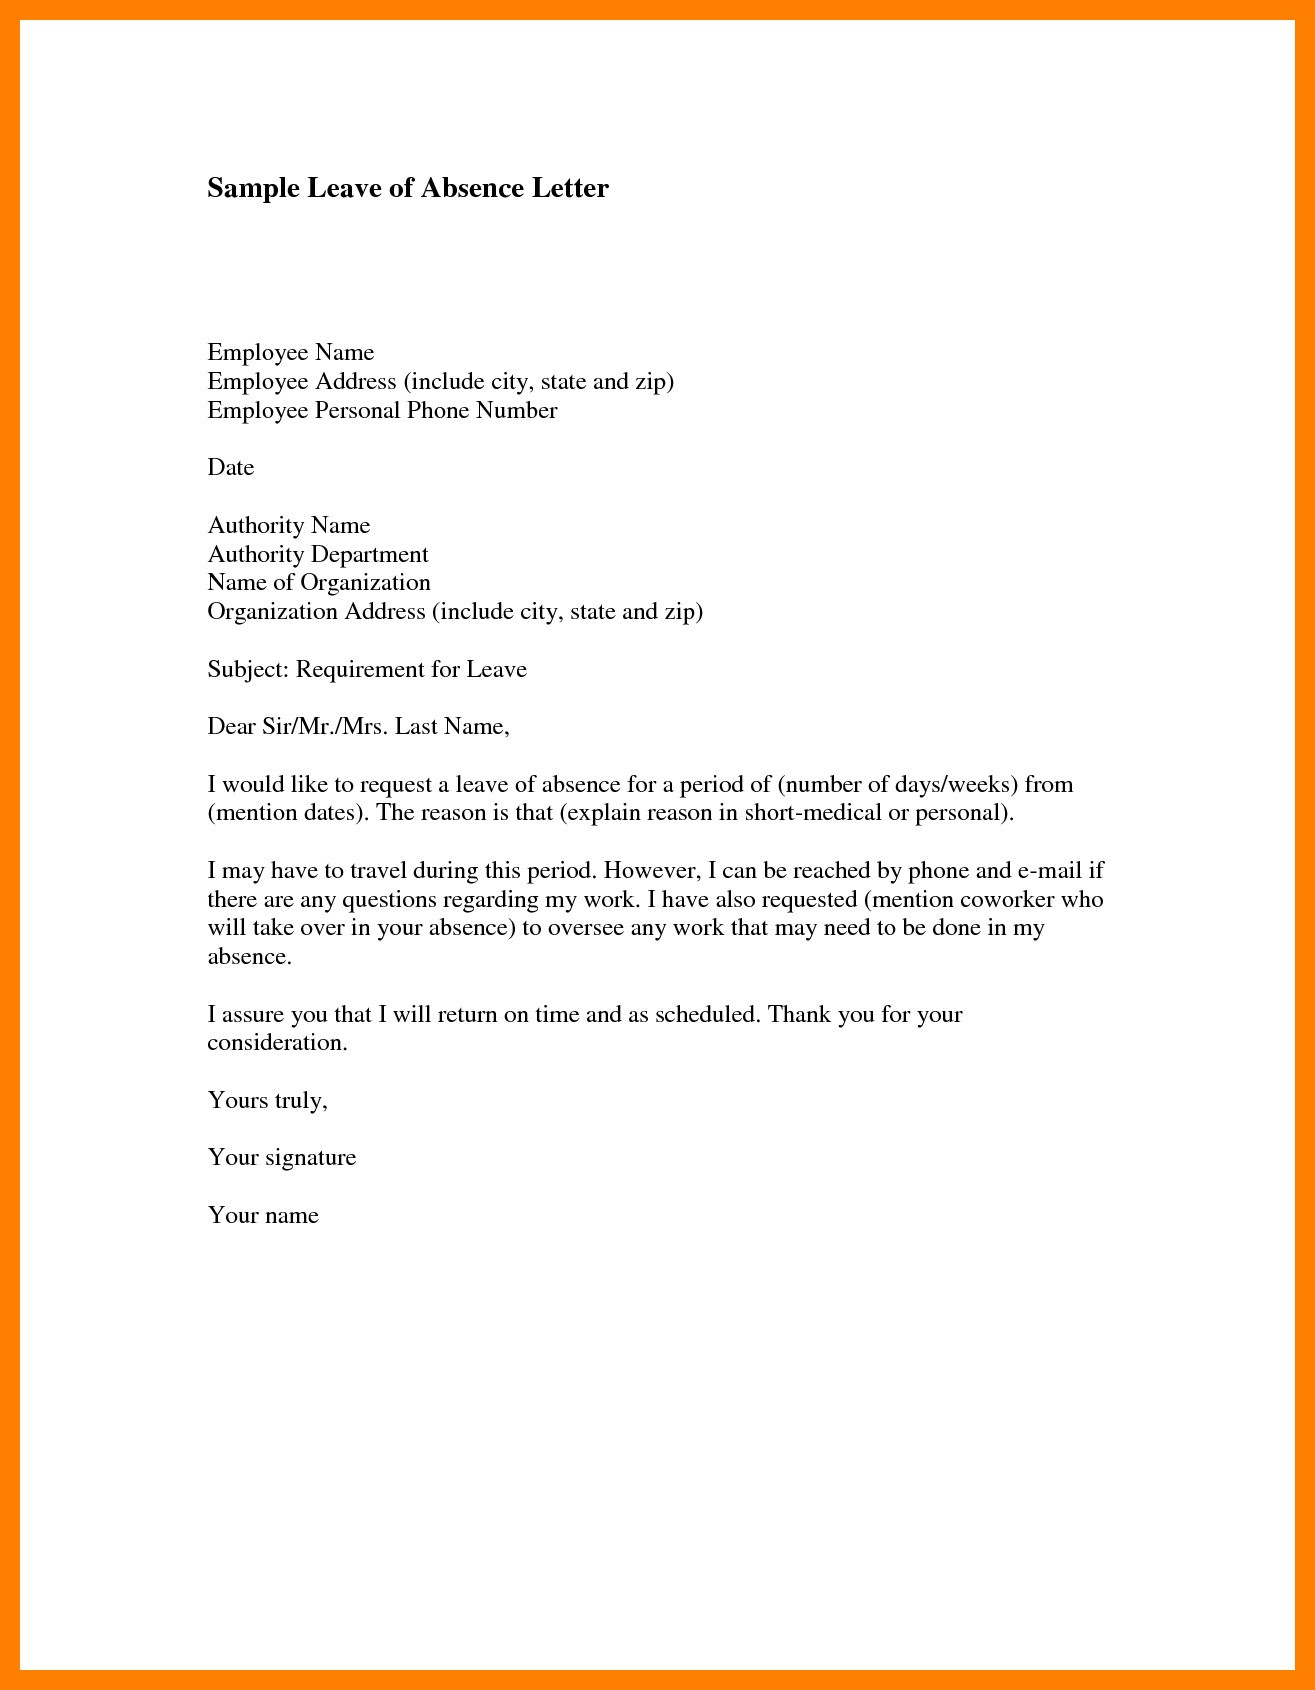 Medical leave of absence letter template examples letter templates medical leave of absence letter template leave letter format for employee new sample leave absence altavistaventures Gallery